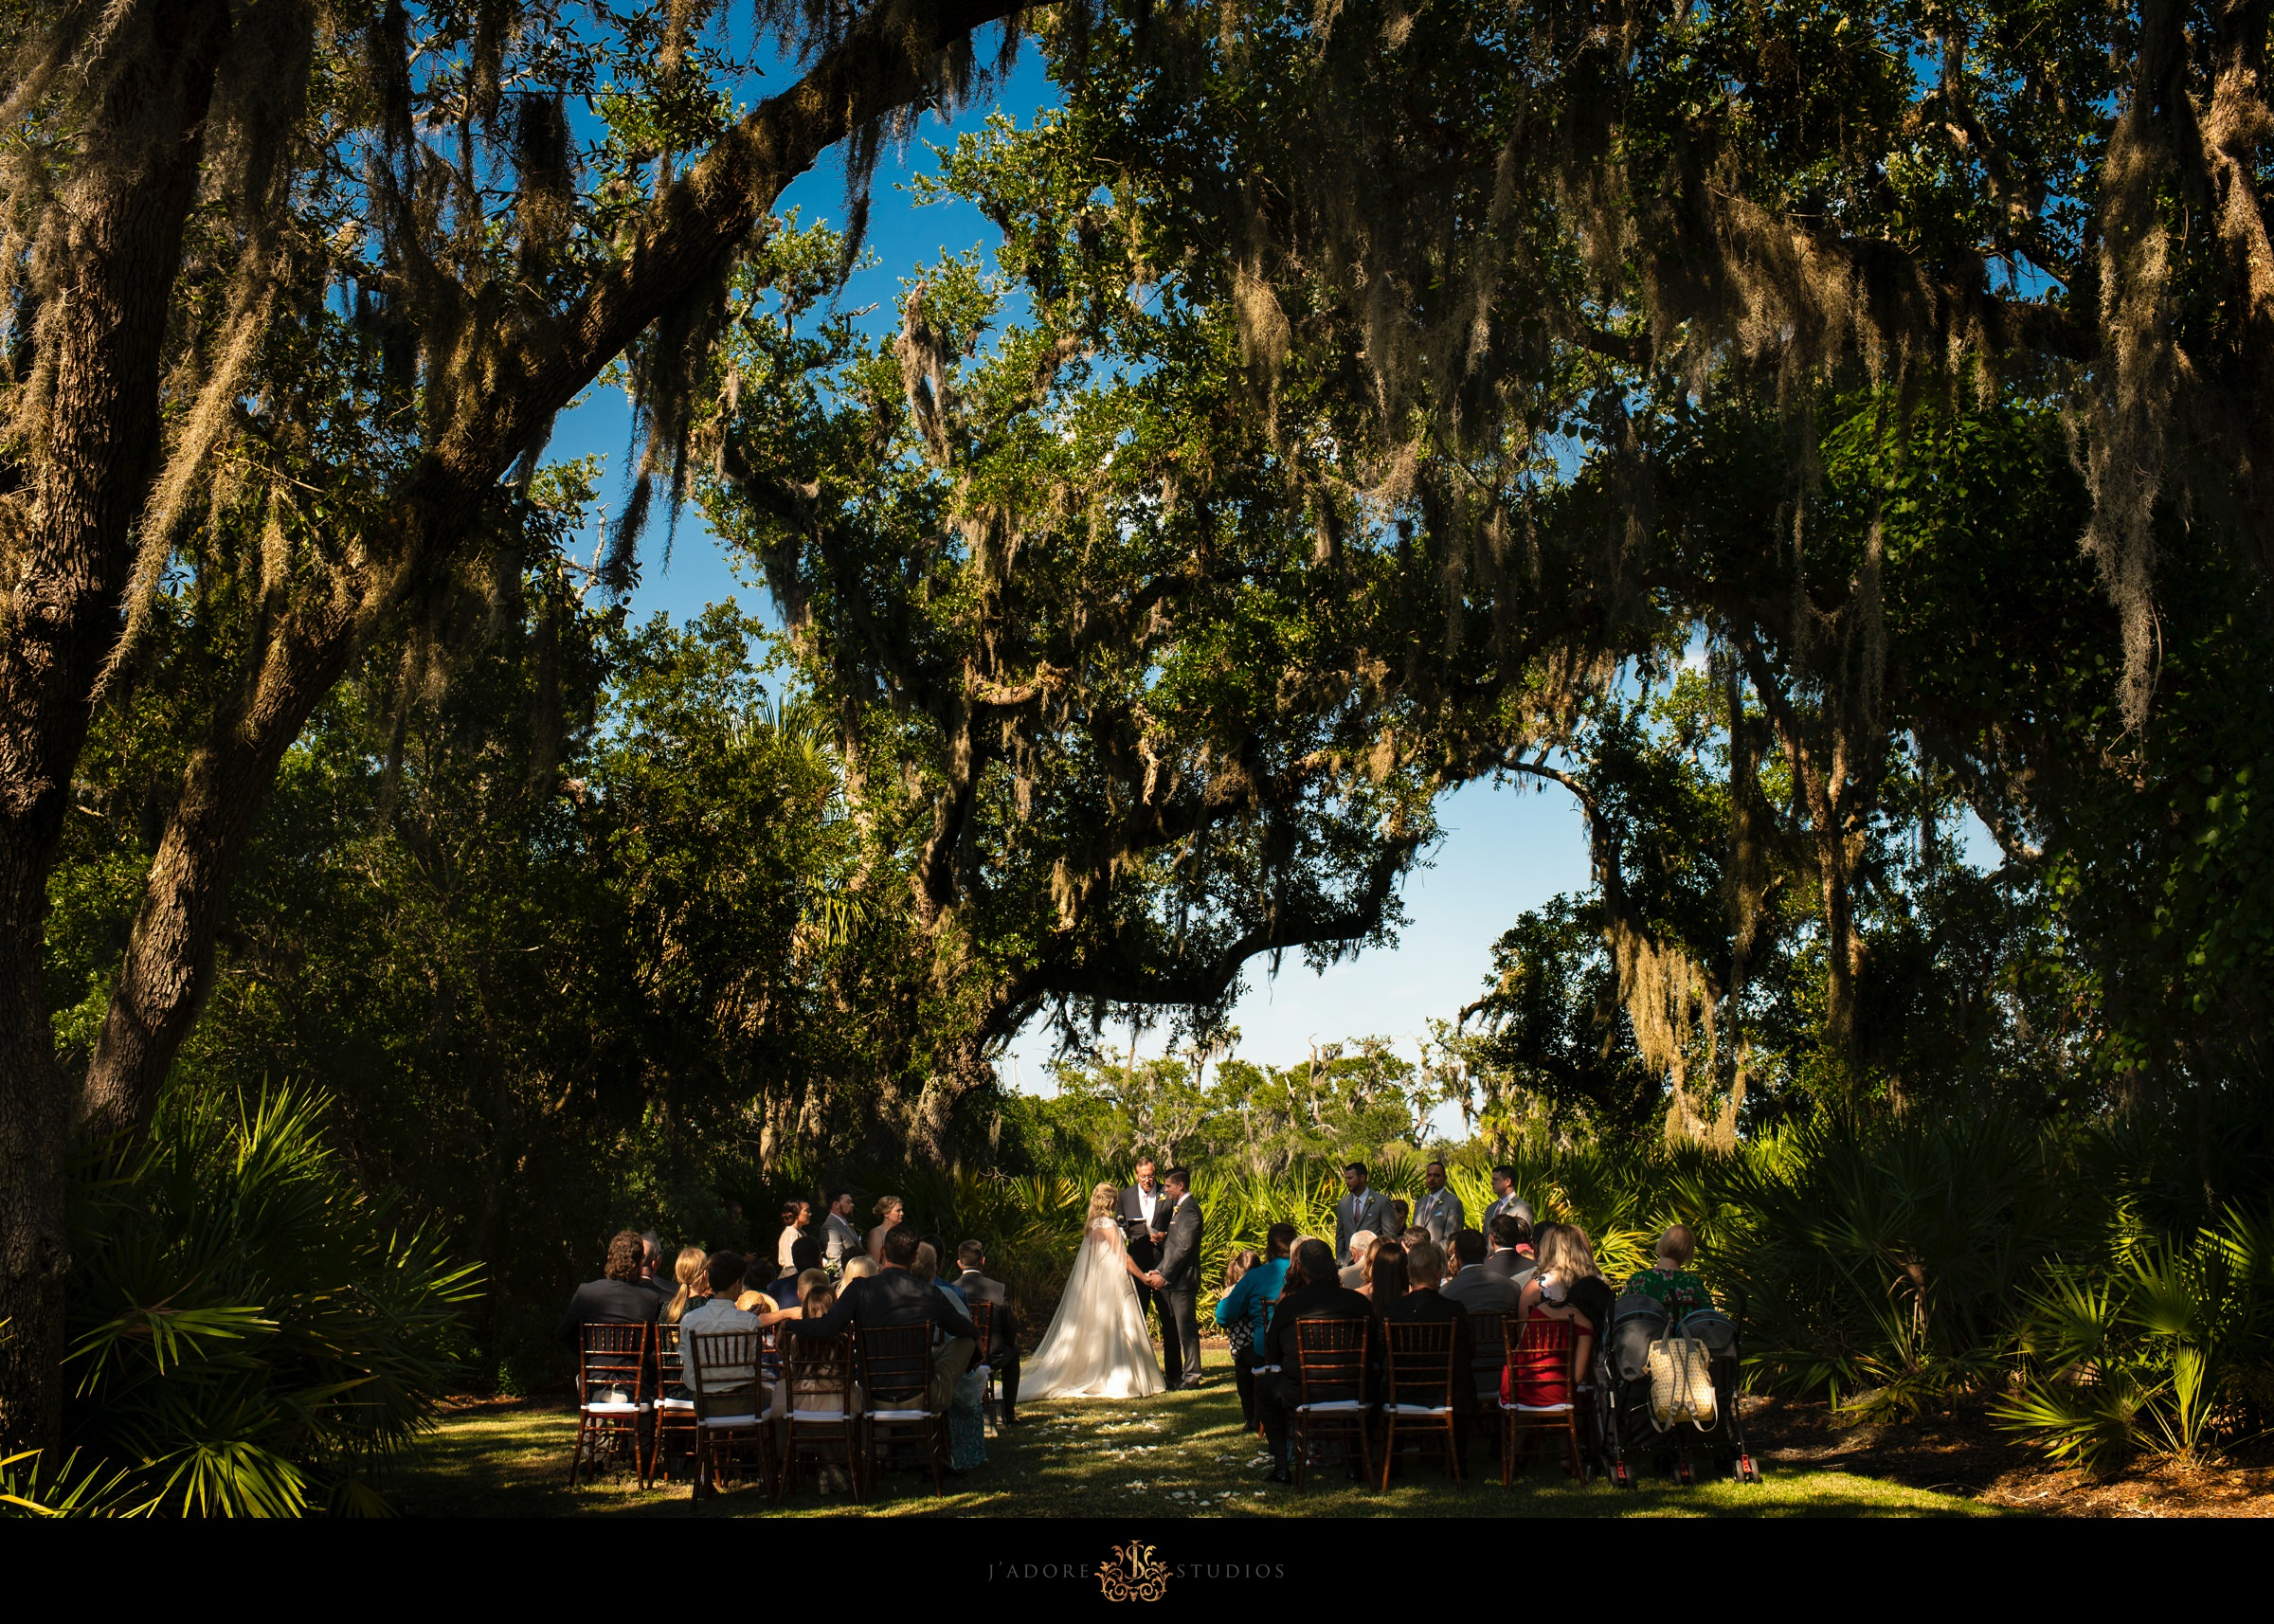 Outdoor ceremony under mossy trees at Oyster Bay Yacht Club in Fernandina Beach Florida